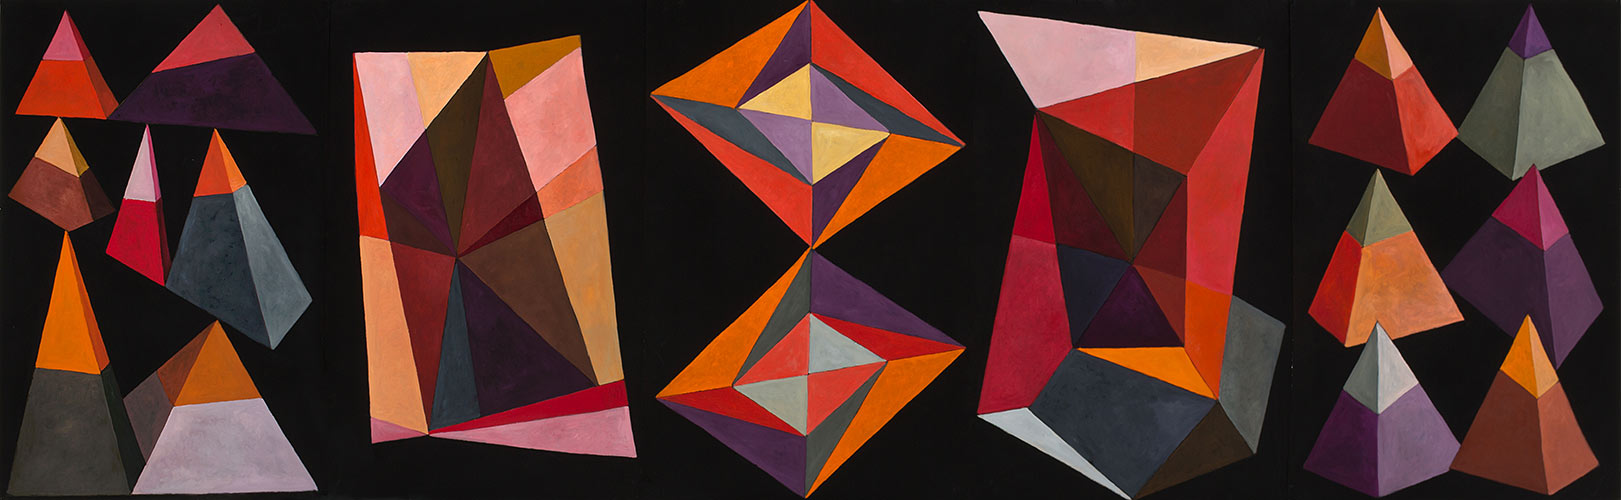 Triangle Shuffle, Oil on paper, Mary Alice Copp